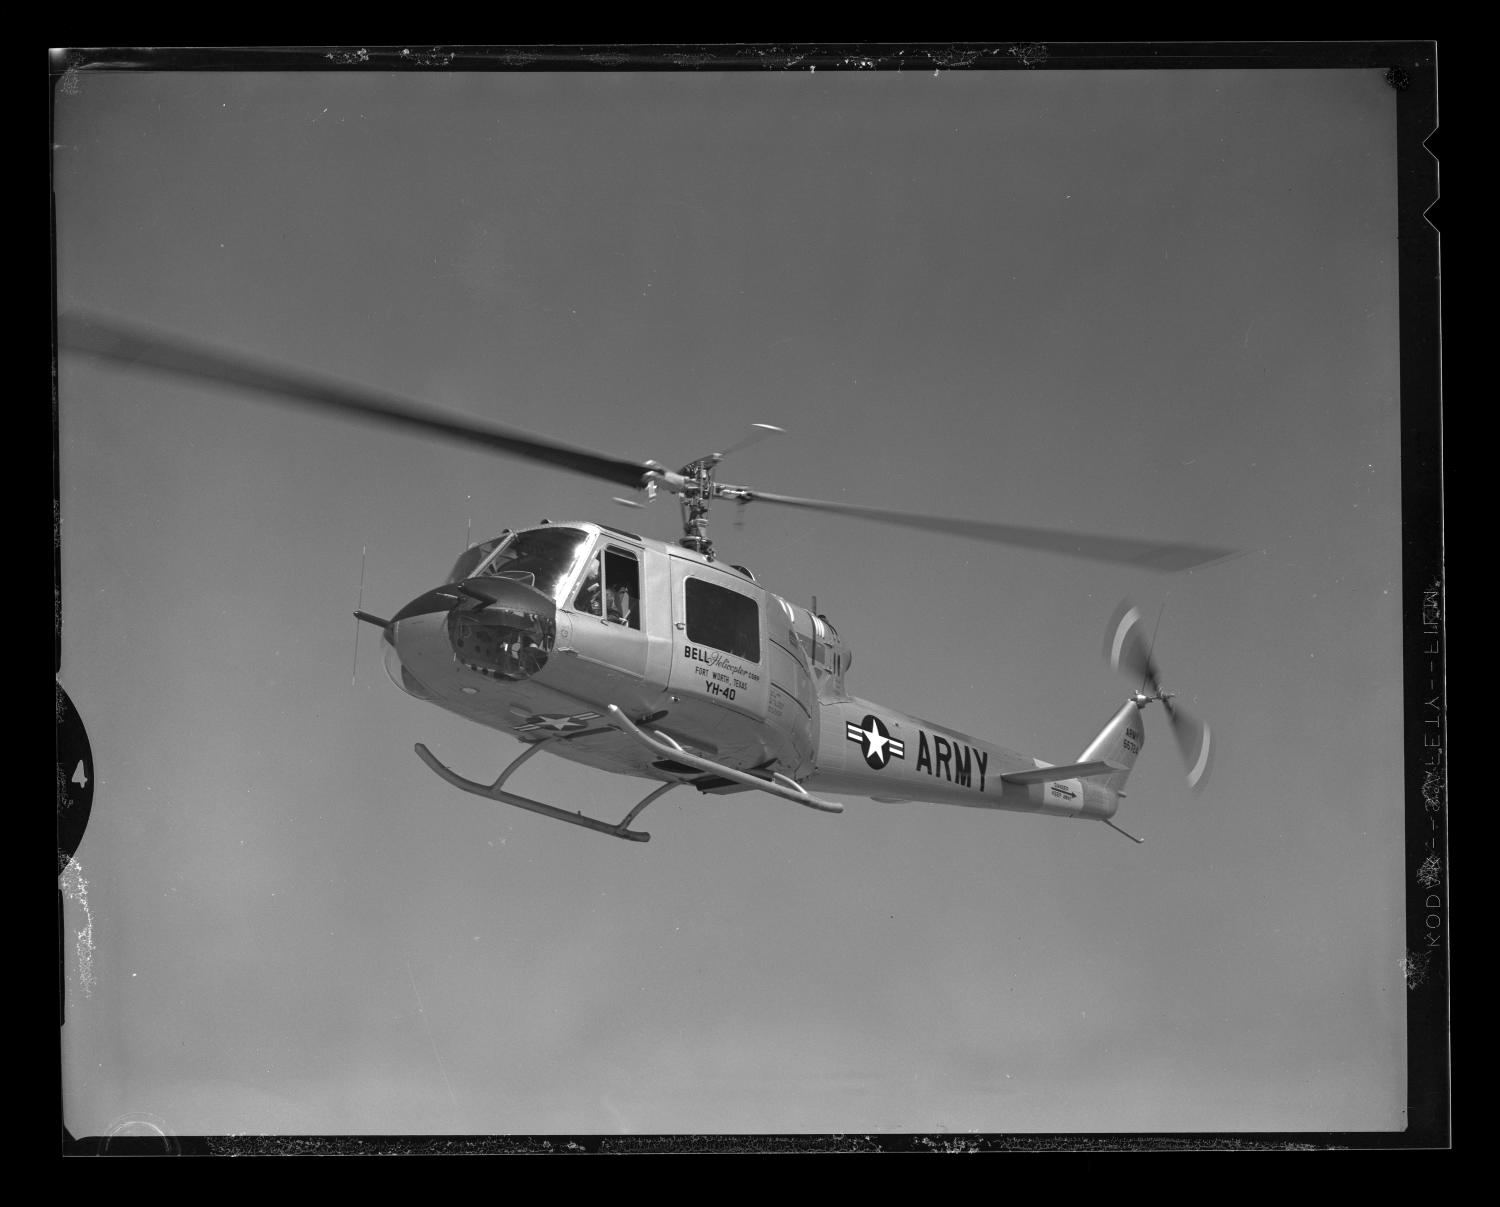 [The Bell YH-40 helicopter in flight]                                                                                                      [Sequence #]: 1 of 1